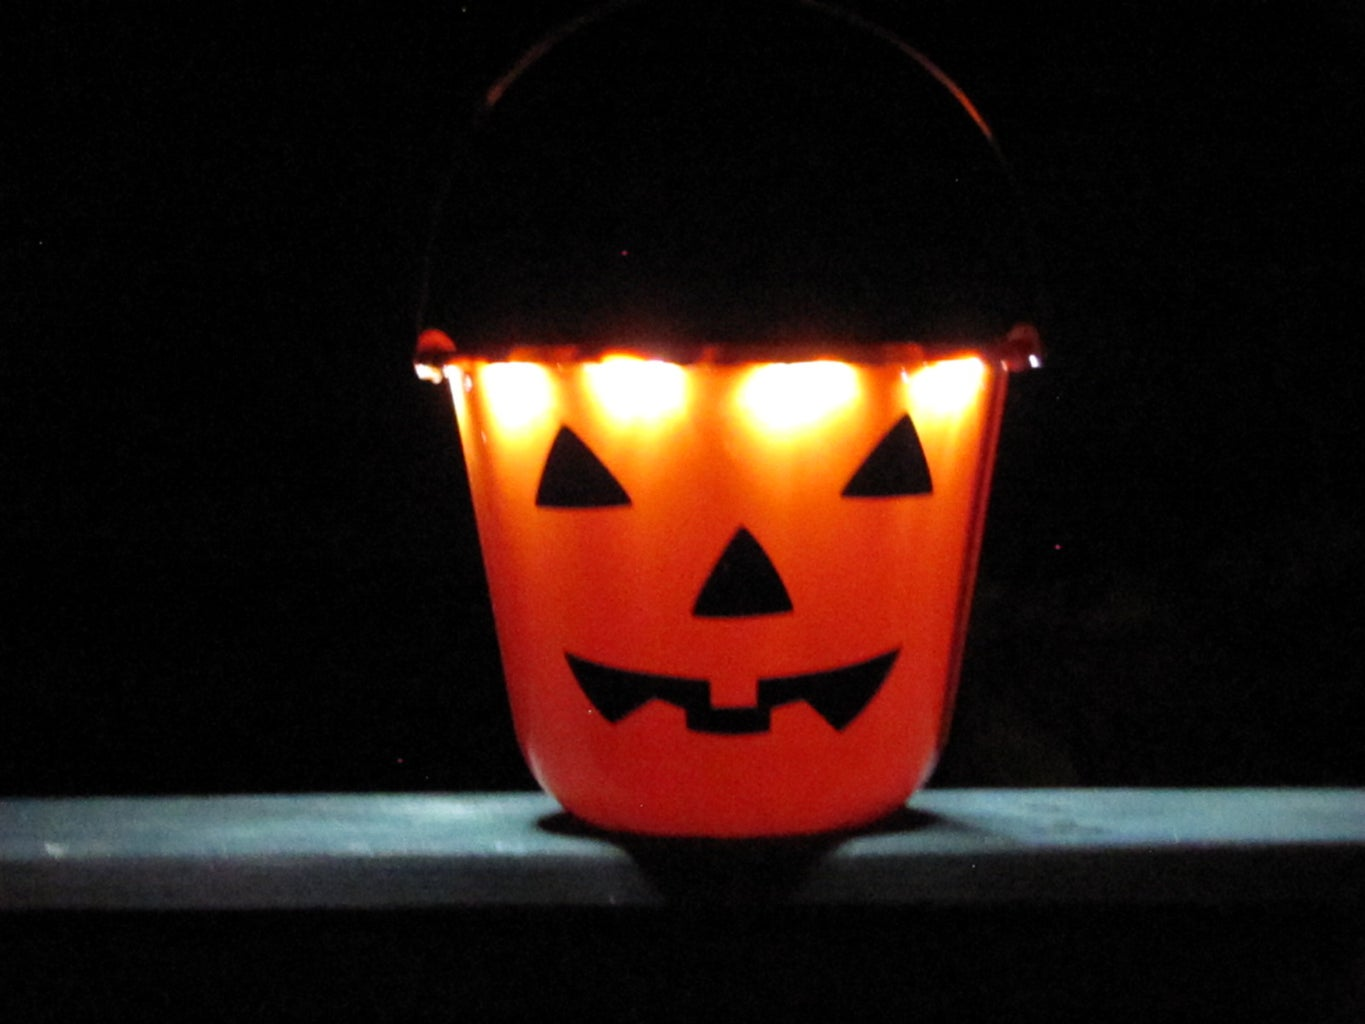 Fire That LED Trick-or-Treat Bucket Up and Be Safe Trick-or-Treating